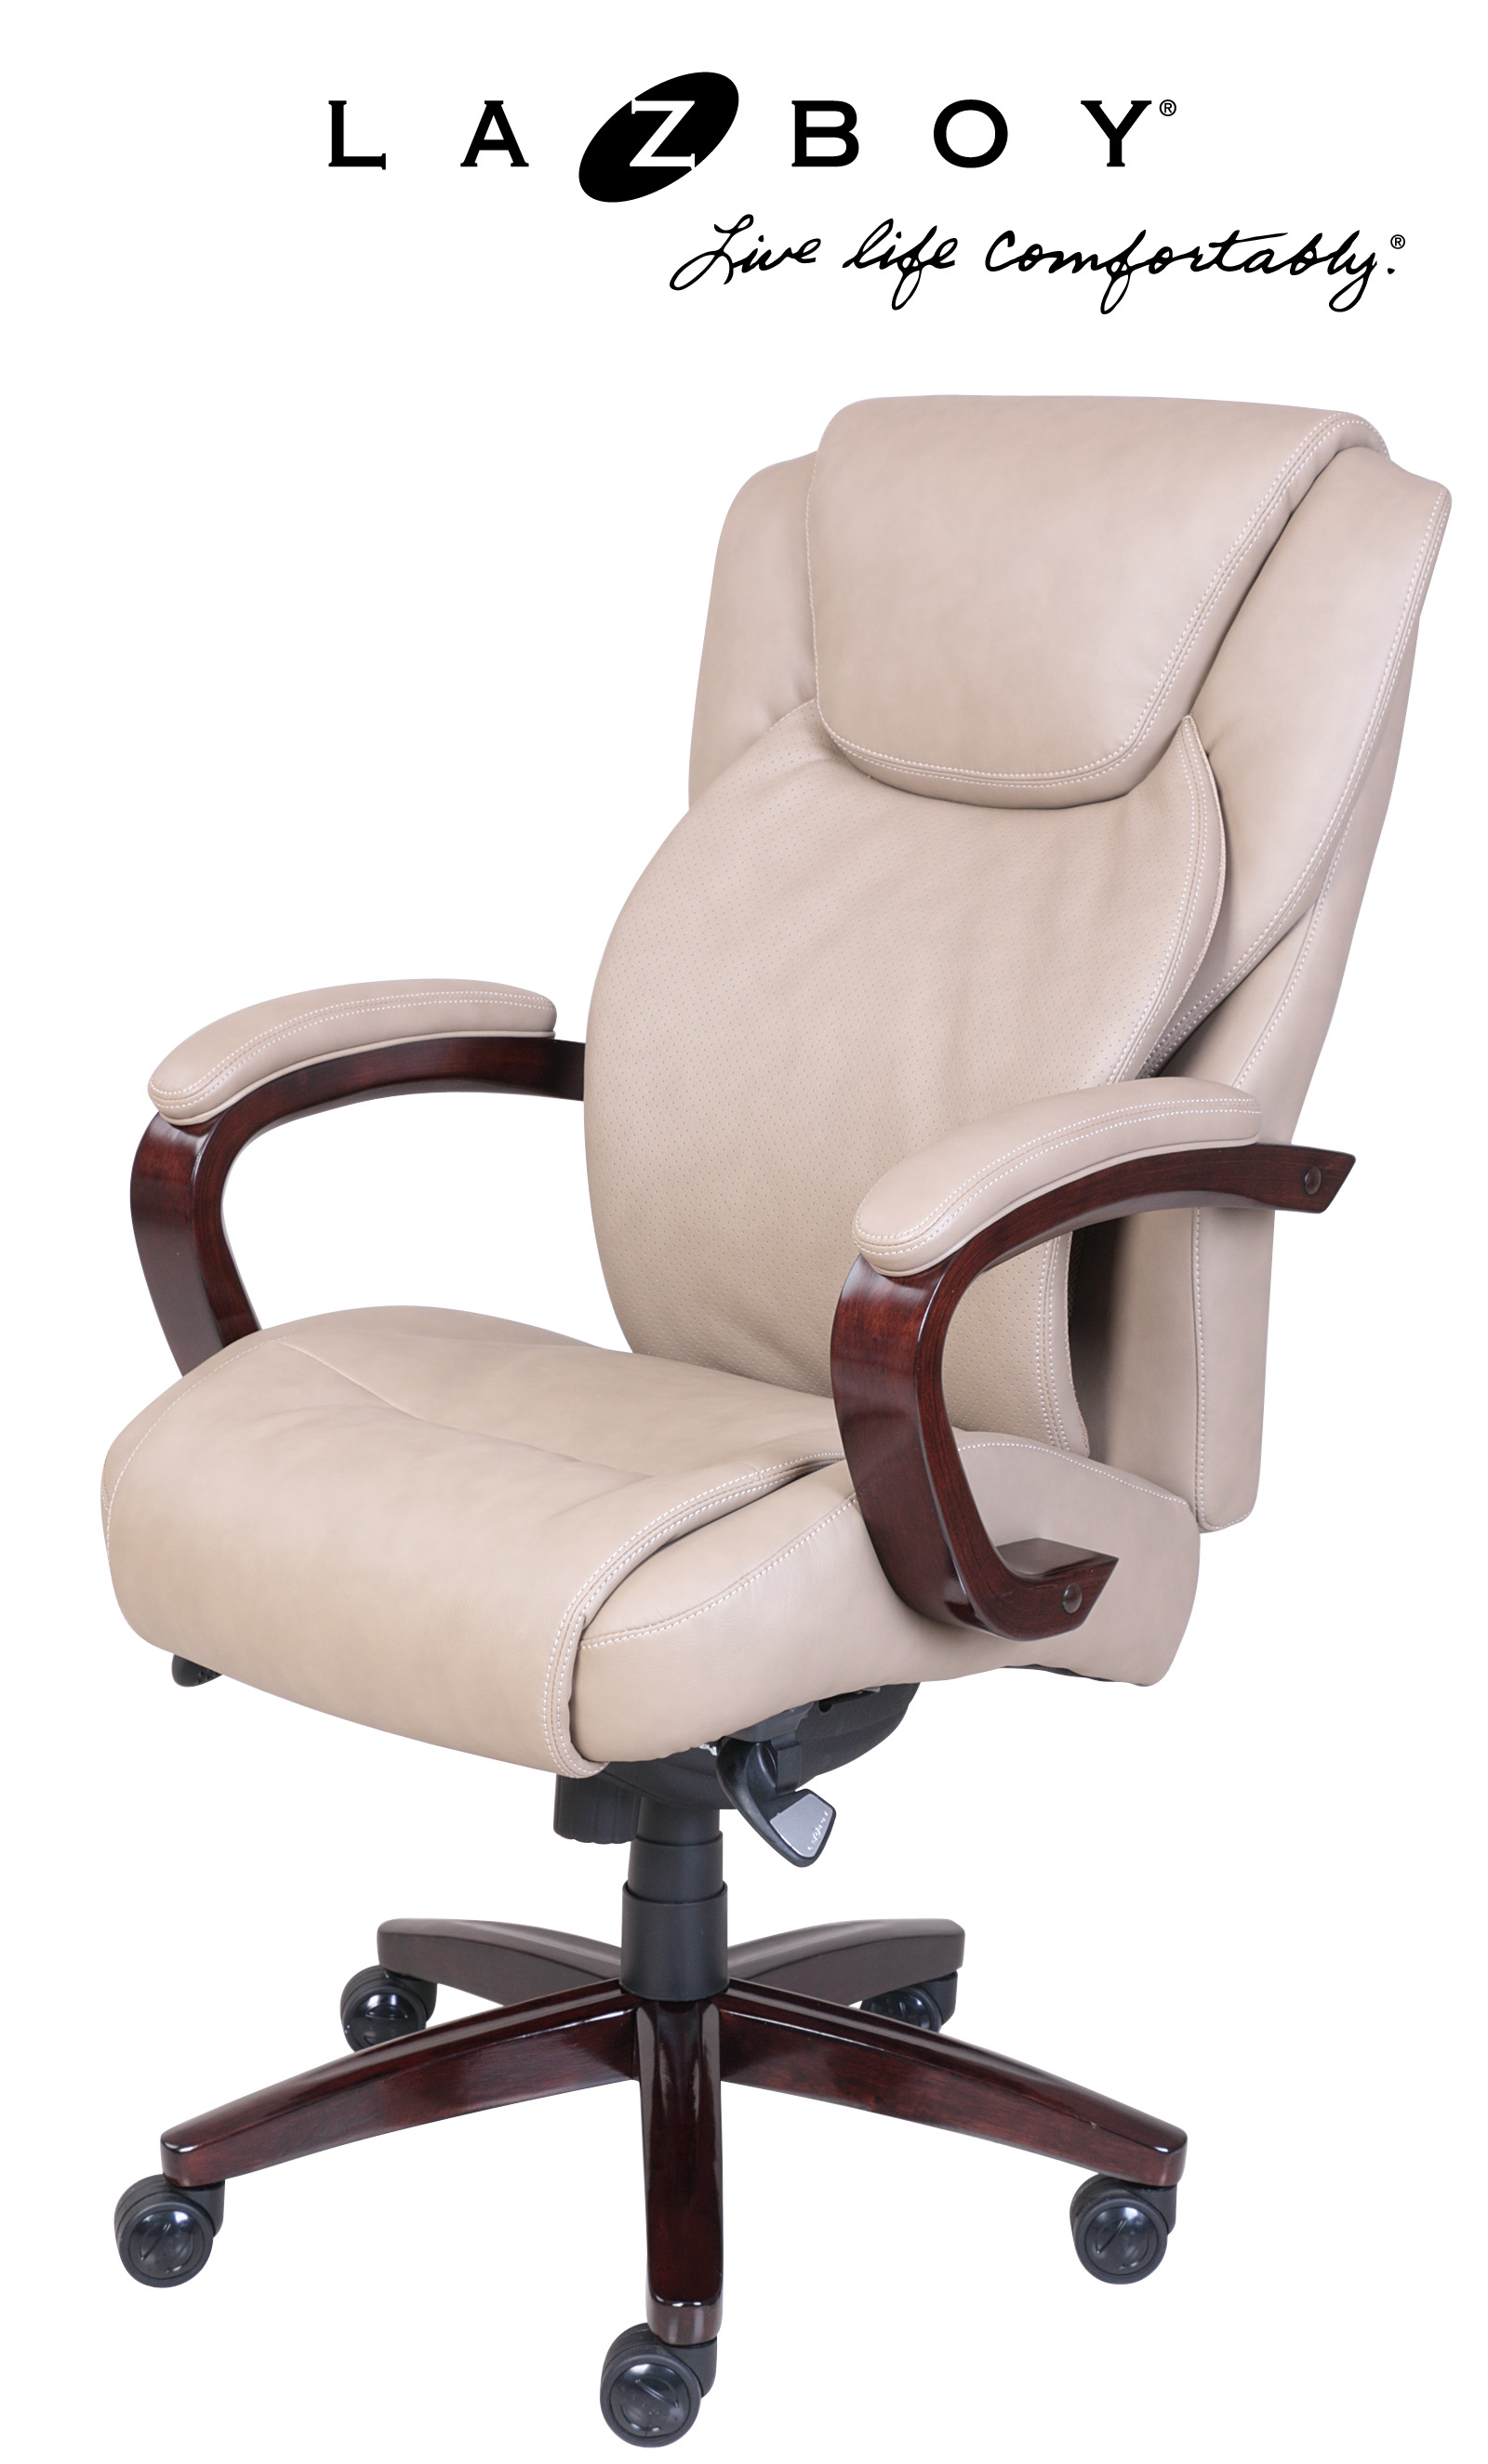 la z boy big tall executive leather office chair black adirondack covers linden comfort core traditions air technology